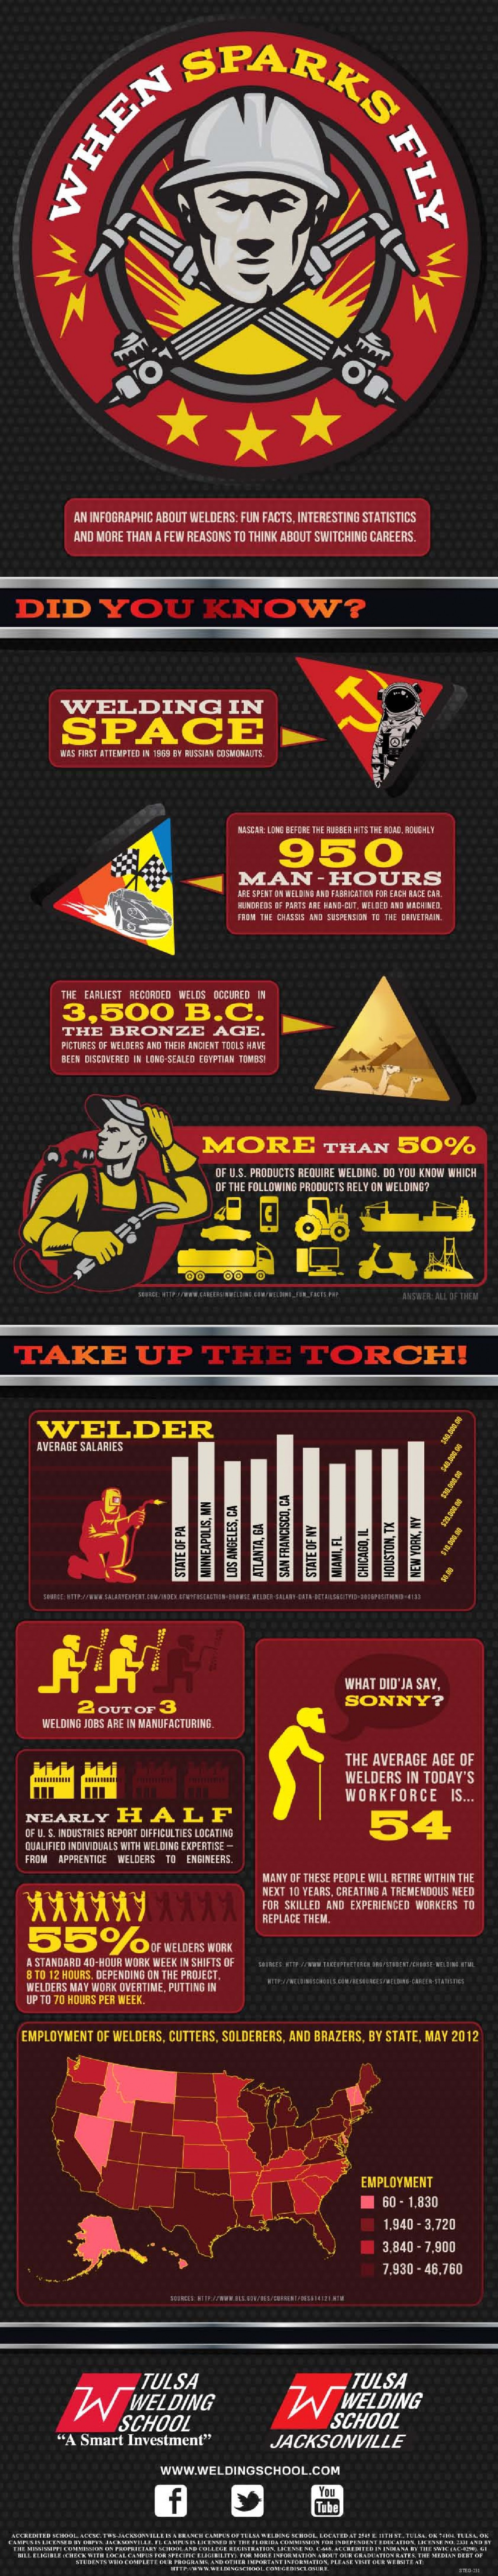 Welders: Fun Facts, Interesting Statistics and More Than a Few Reasons to Think About Switching Careers Infographic